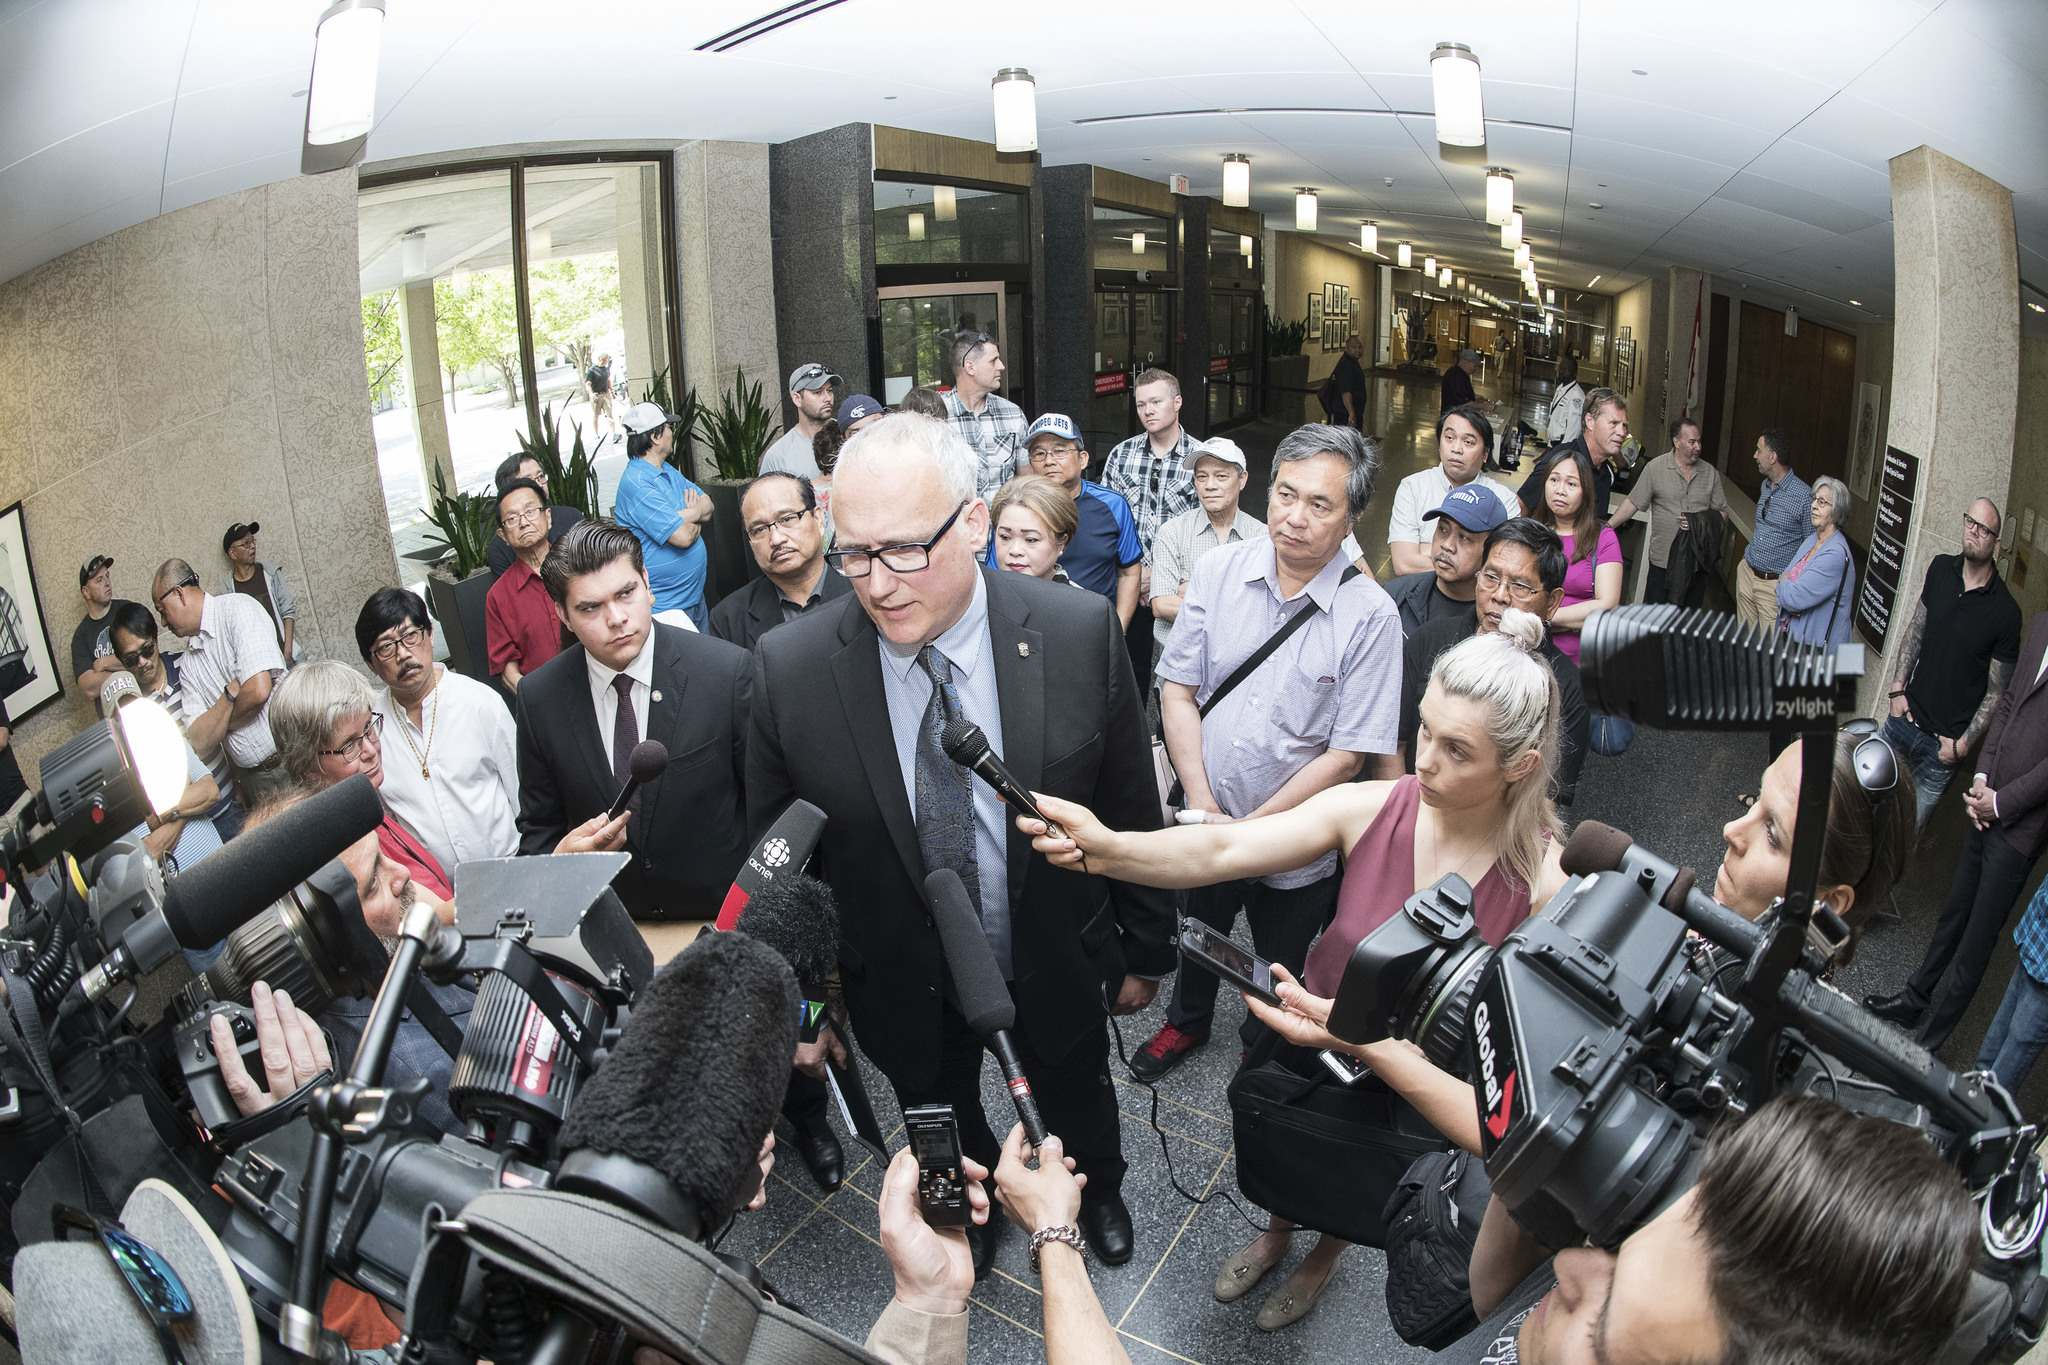 MIKE SUDOMA / WINNIPEG FREE PRESS</p><p>Police officer Tim Diack, surrounded by supporters, talks to reporters at city hall Thursday.</p>